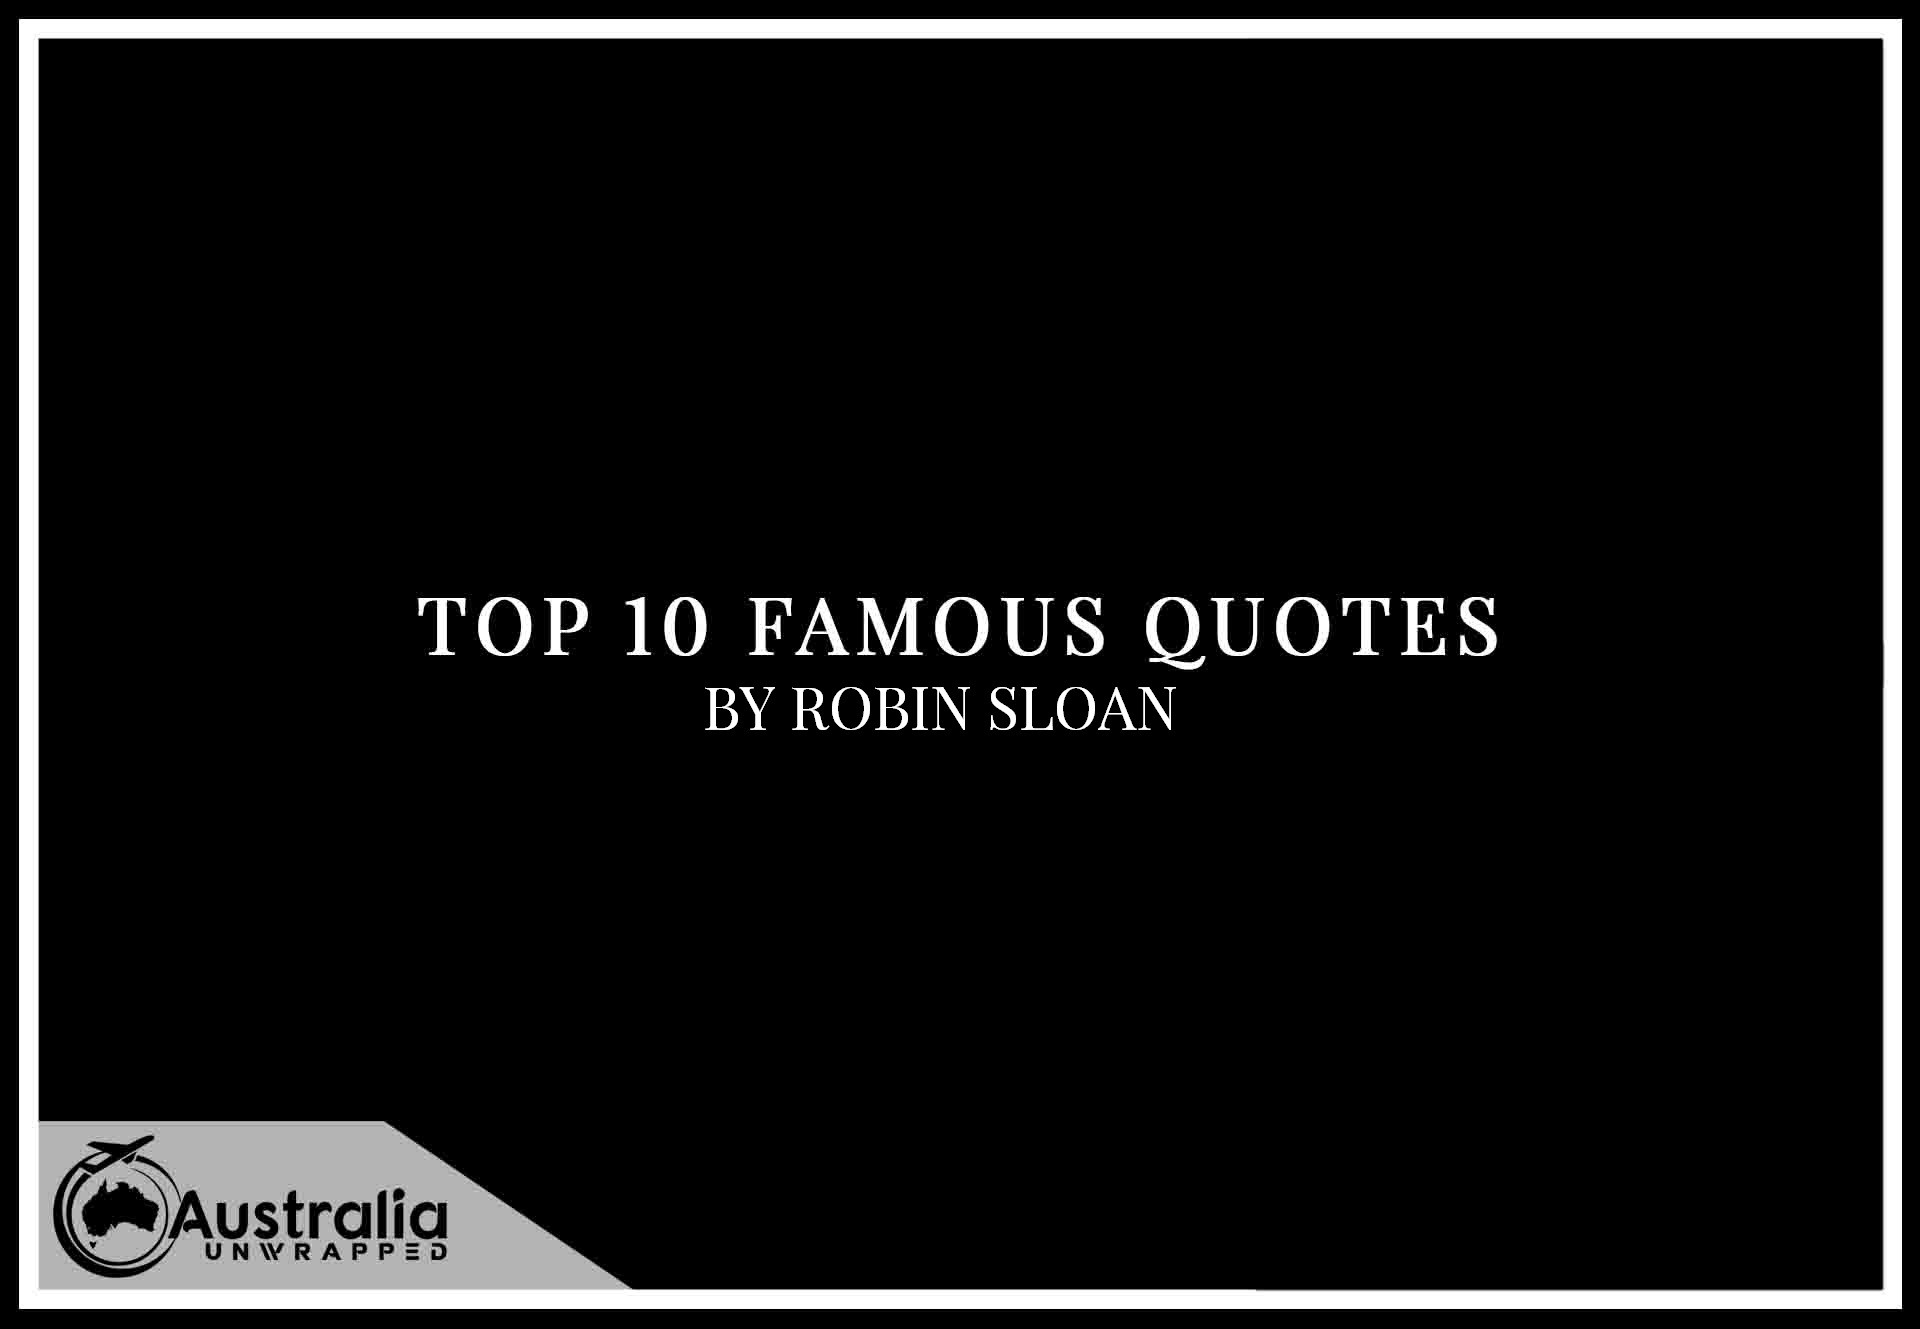 Top 10 Famous Quotes by Author Robin Sloan